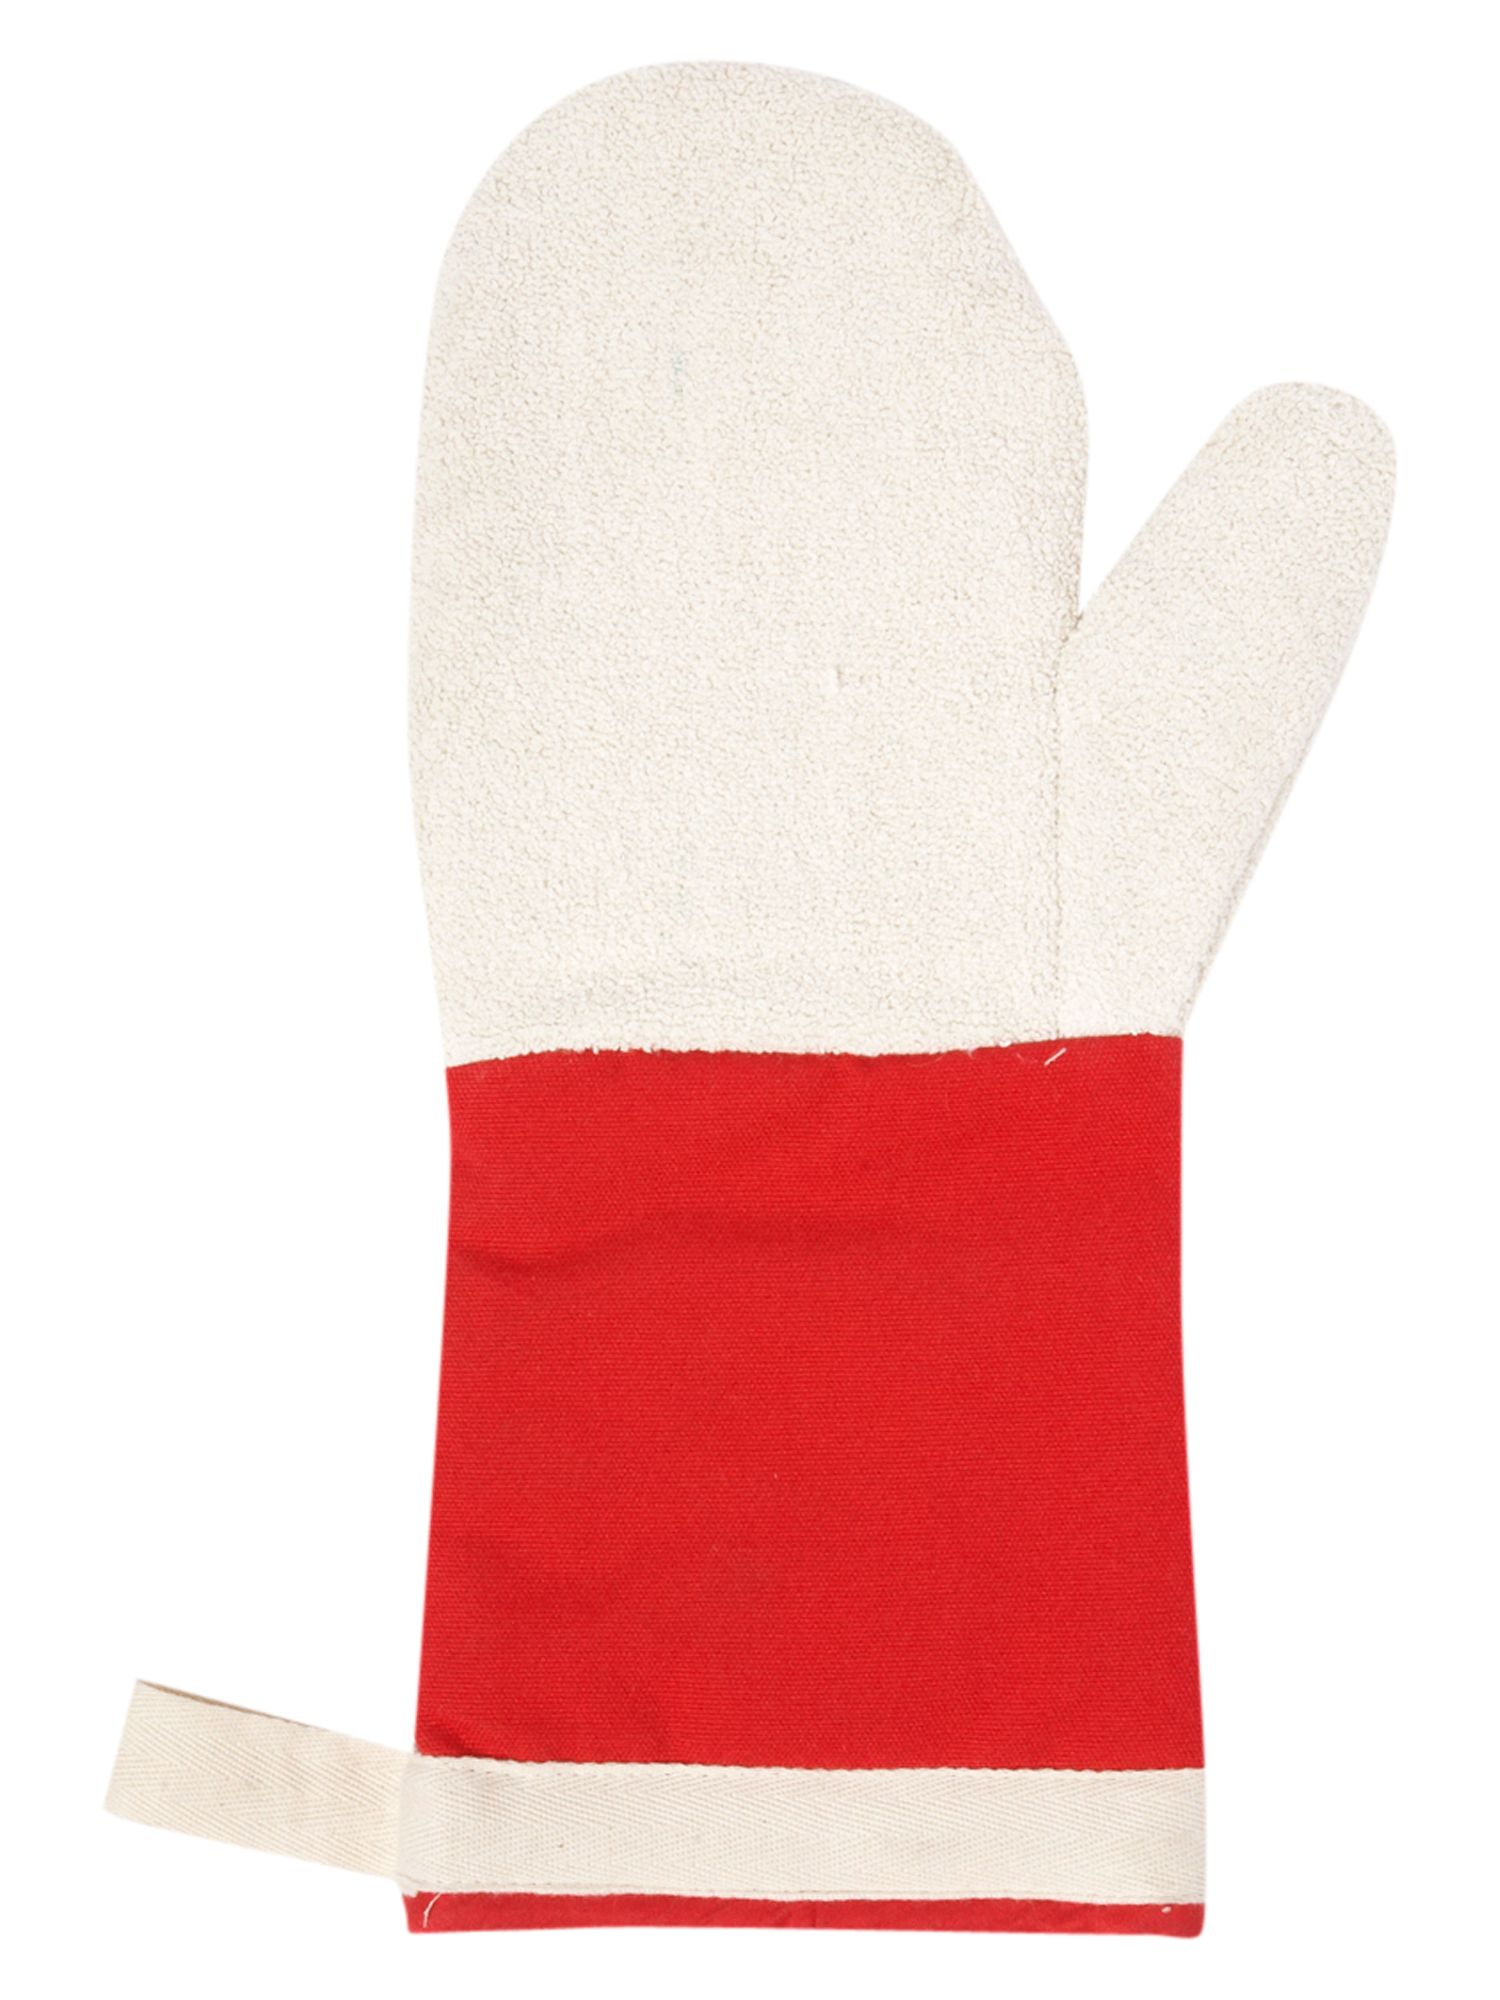 Image of Le Creuset 14 Oven Mitt Red